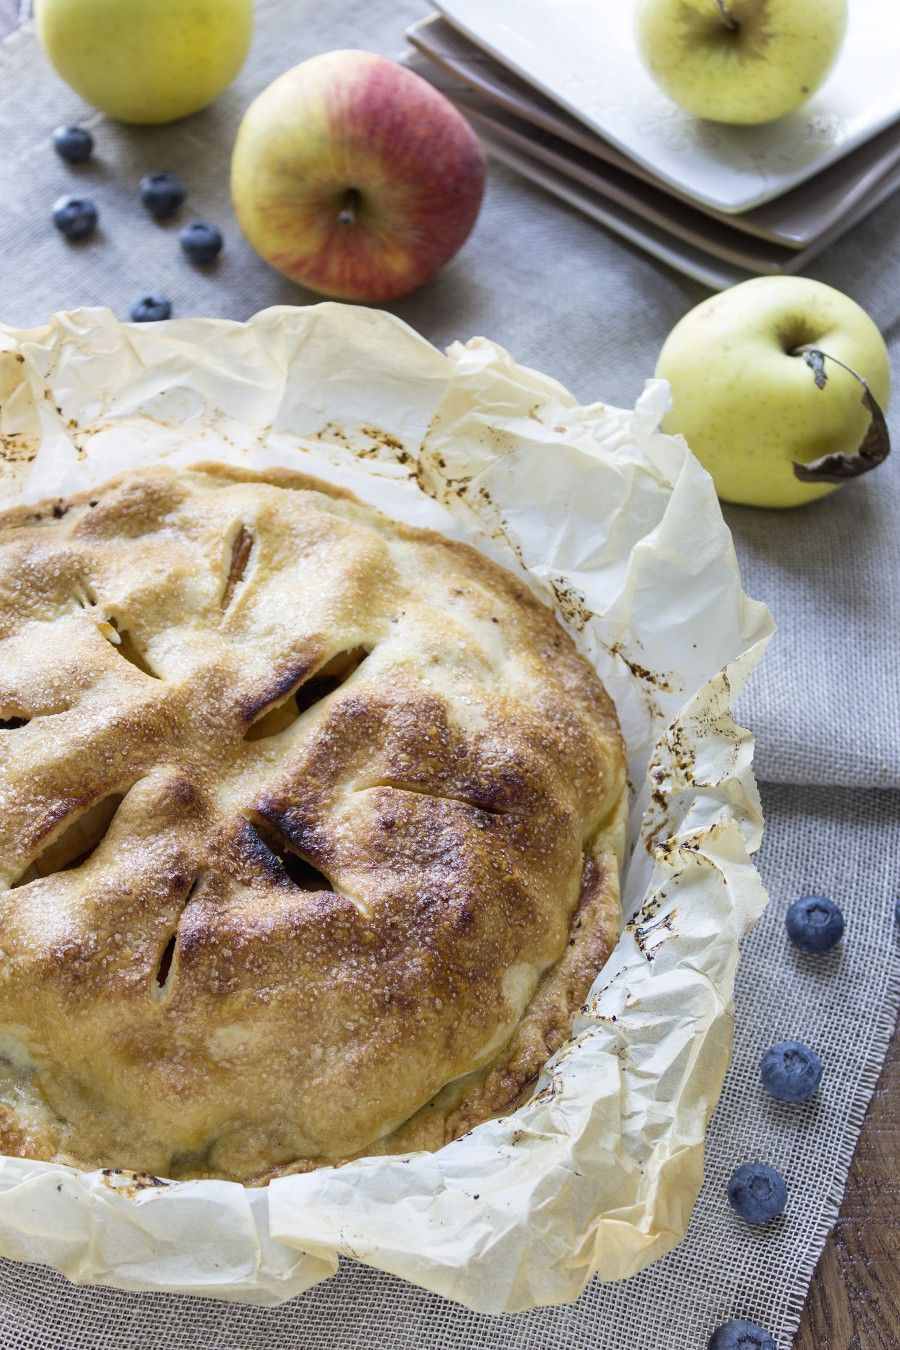 apple-pie-mirtilli-contemporaneo-food